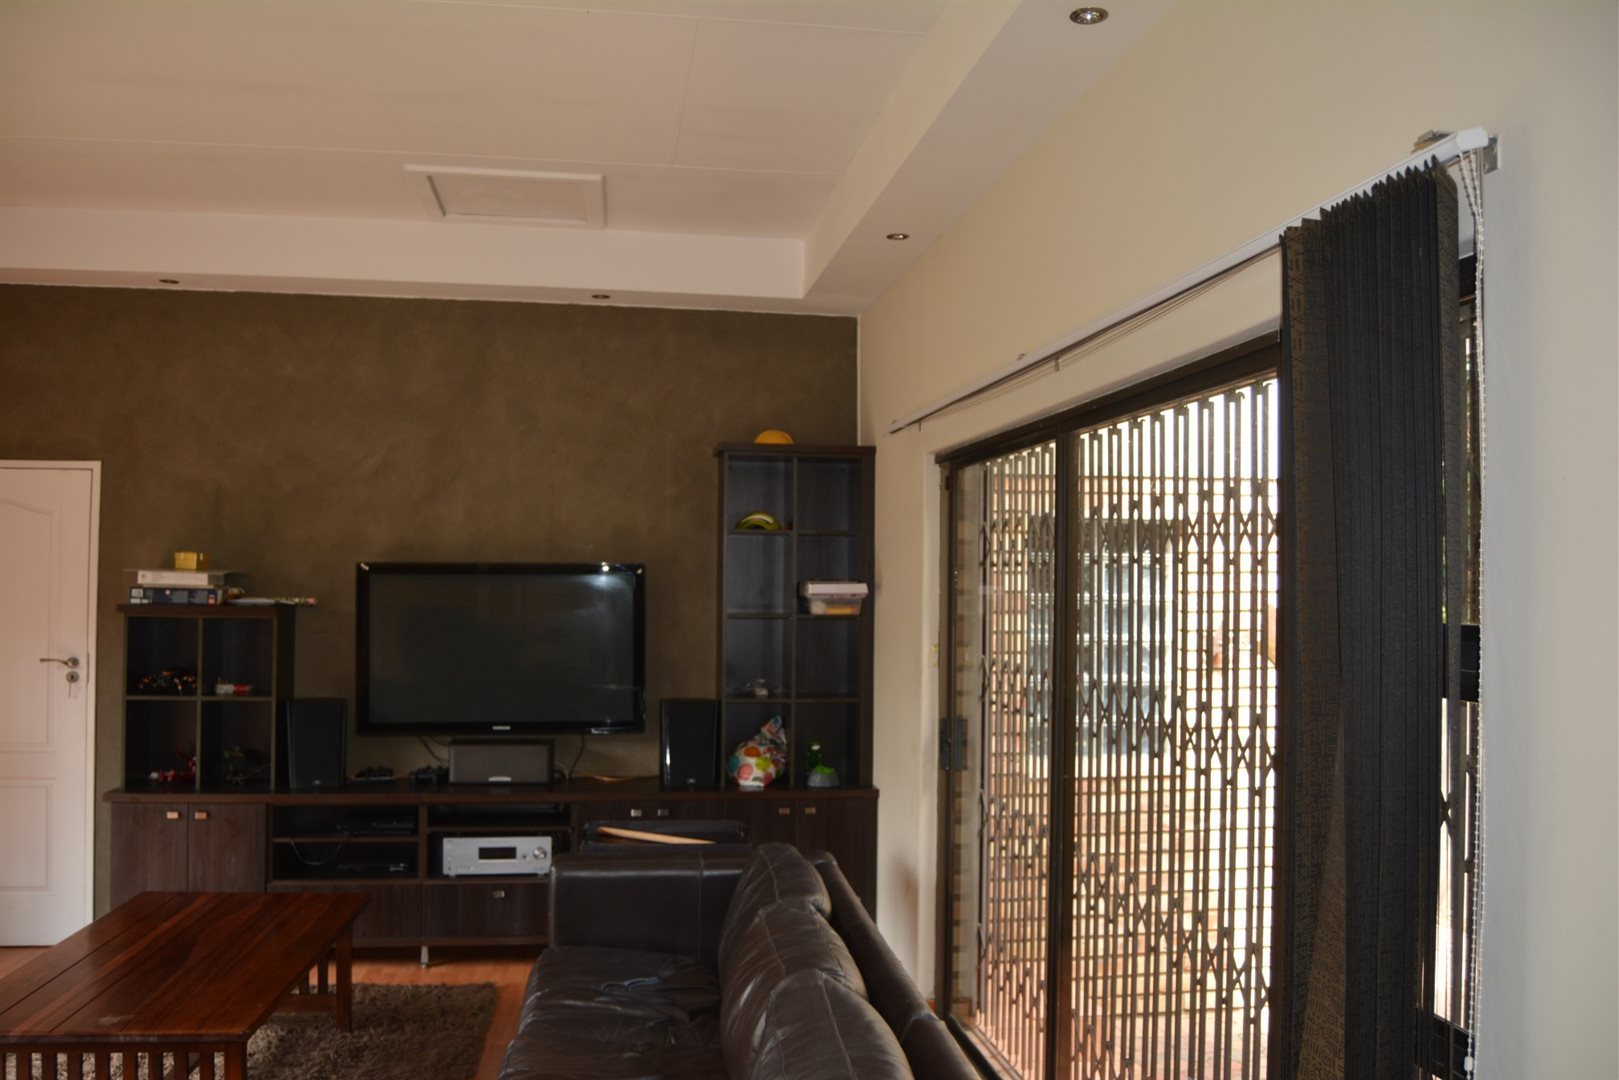 Three Rivers East property for sale. Ref No: 13229414. Picture no 10